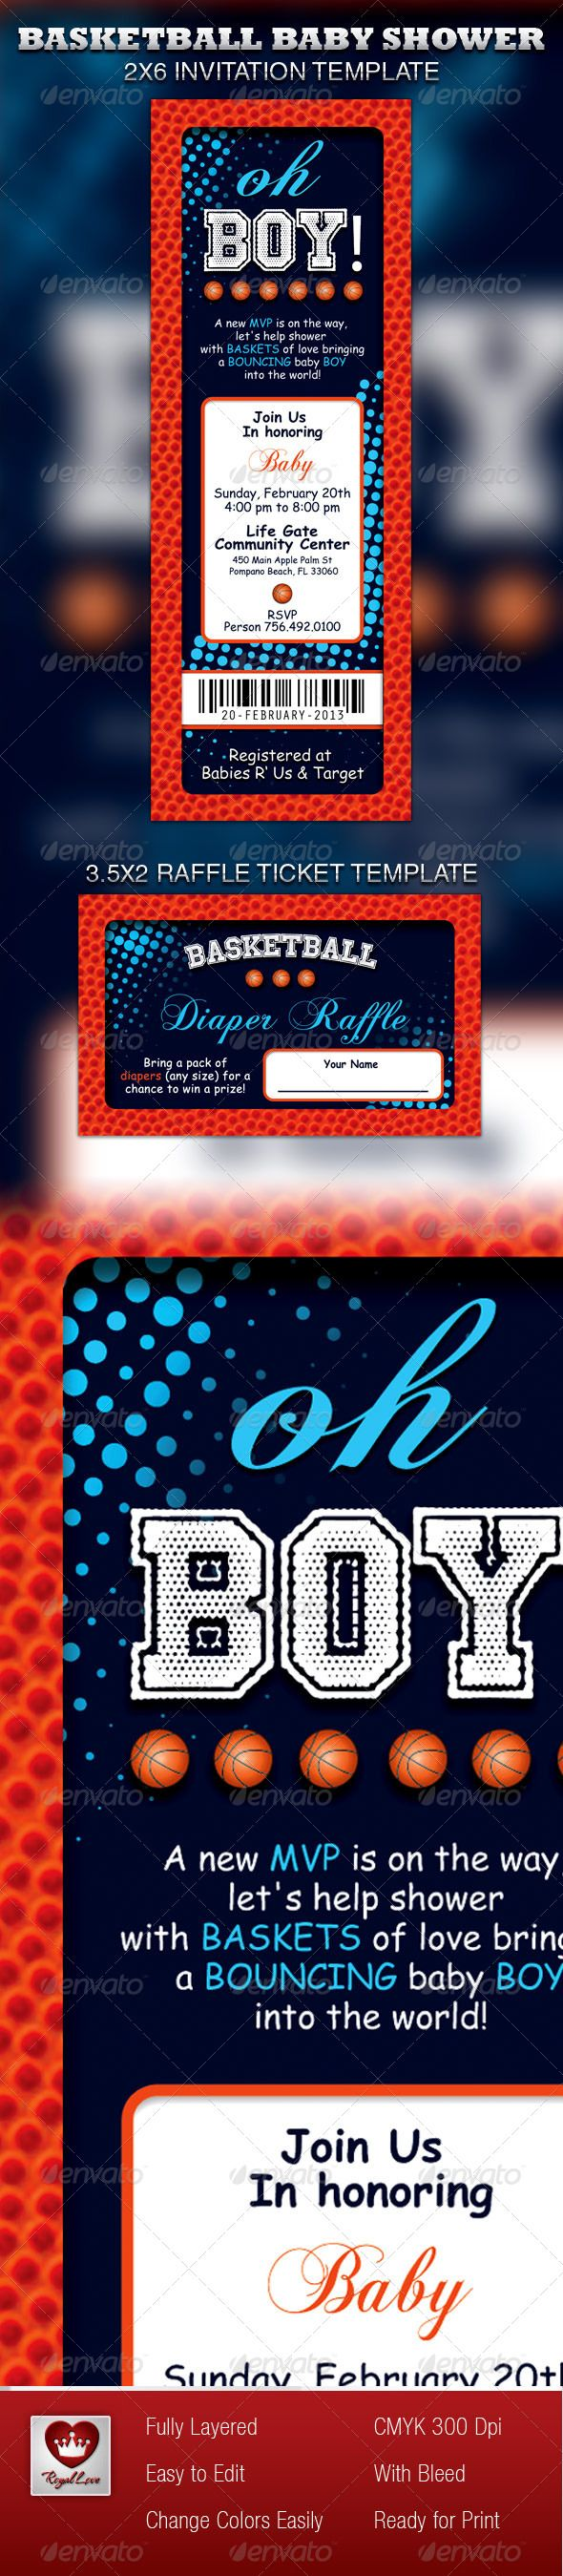 This Basketball Baby Shower Invitation & Raffle Ticket Template is ...